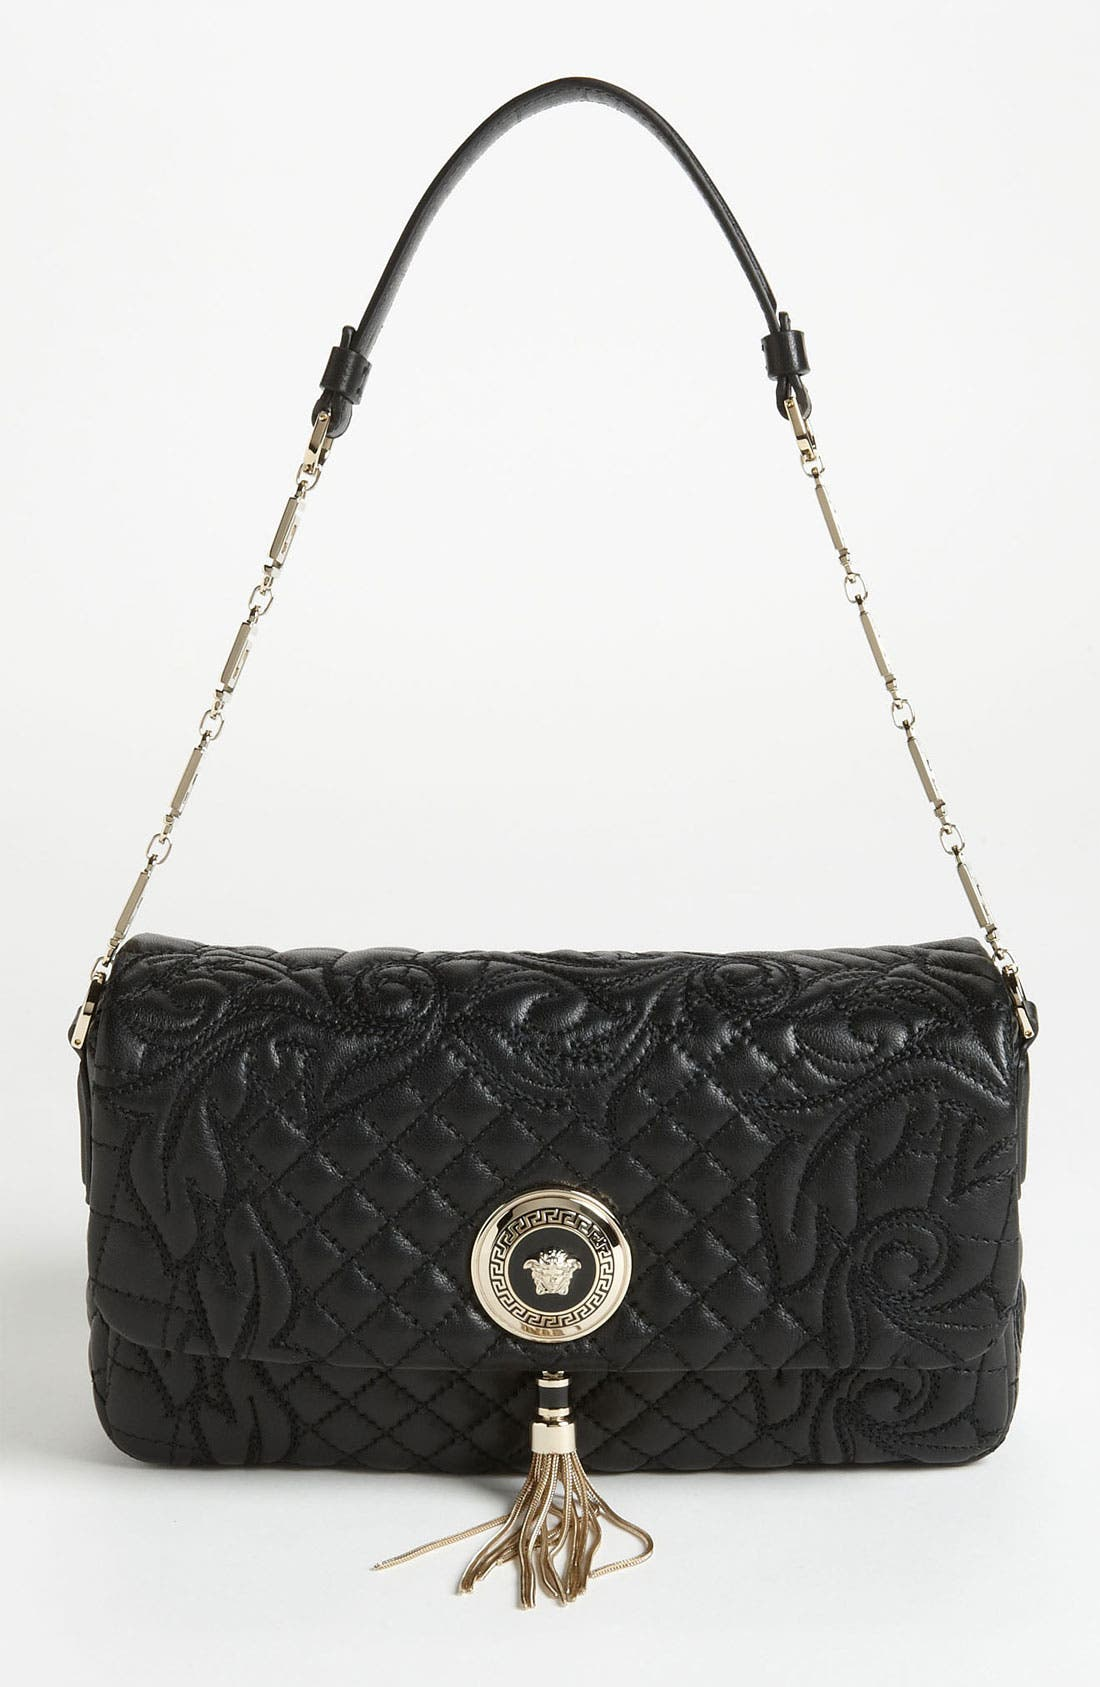 Main Image - Versace 'Vanitas - Small' Embroidered Leather Shoulder Bag